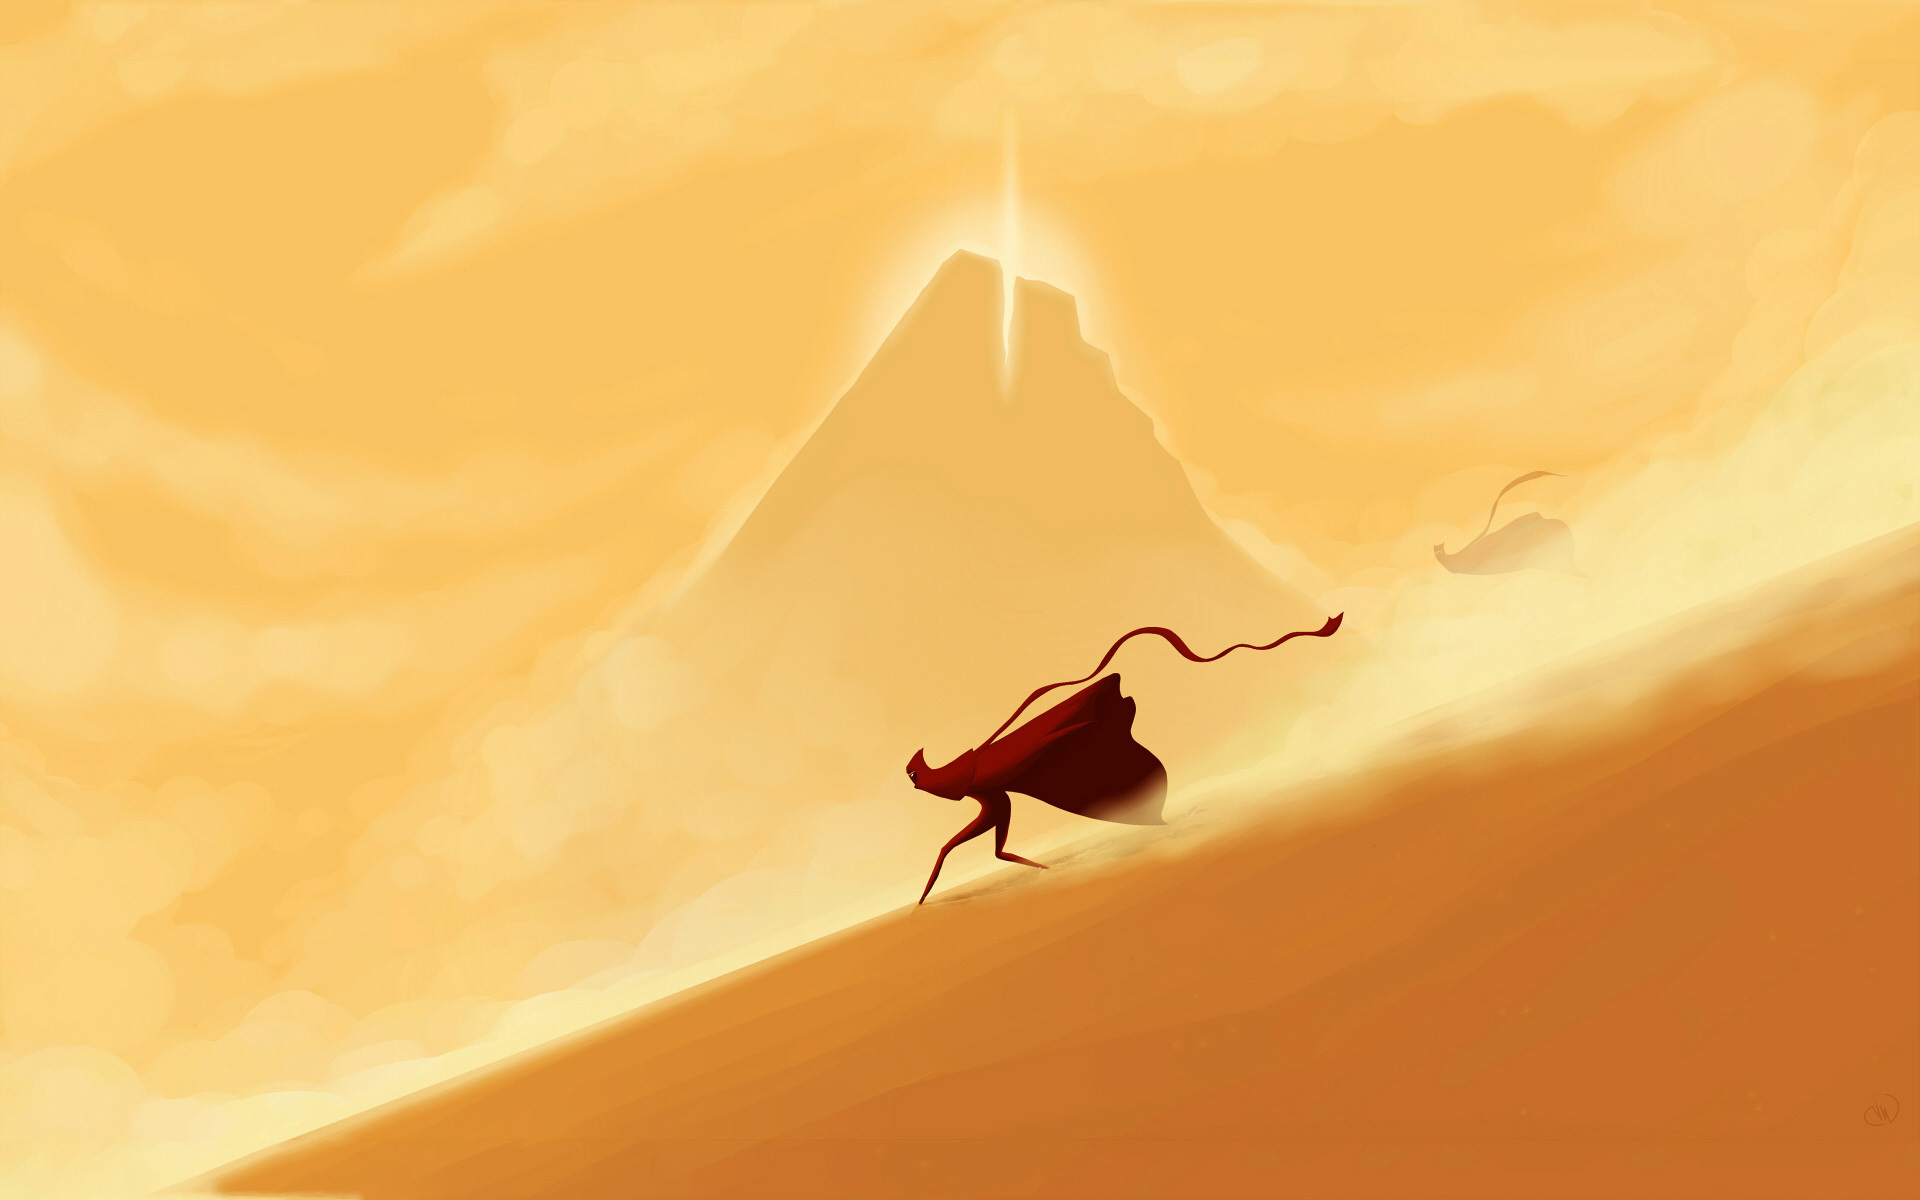 Journey Game wallpaper 1920x1200 5111 1920x1200